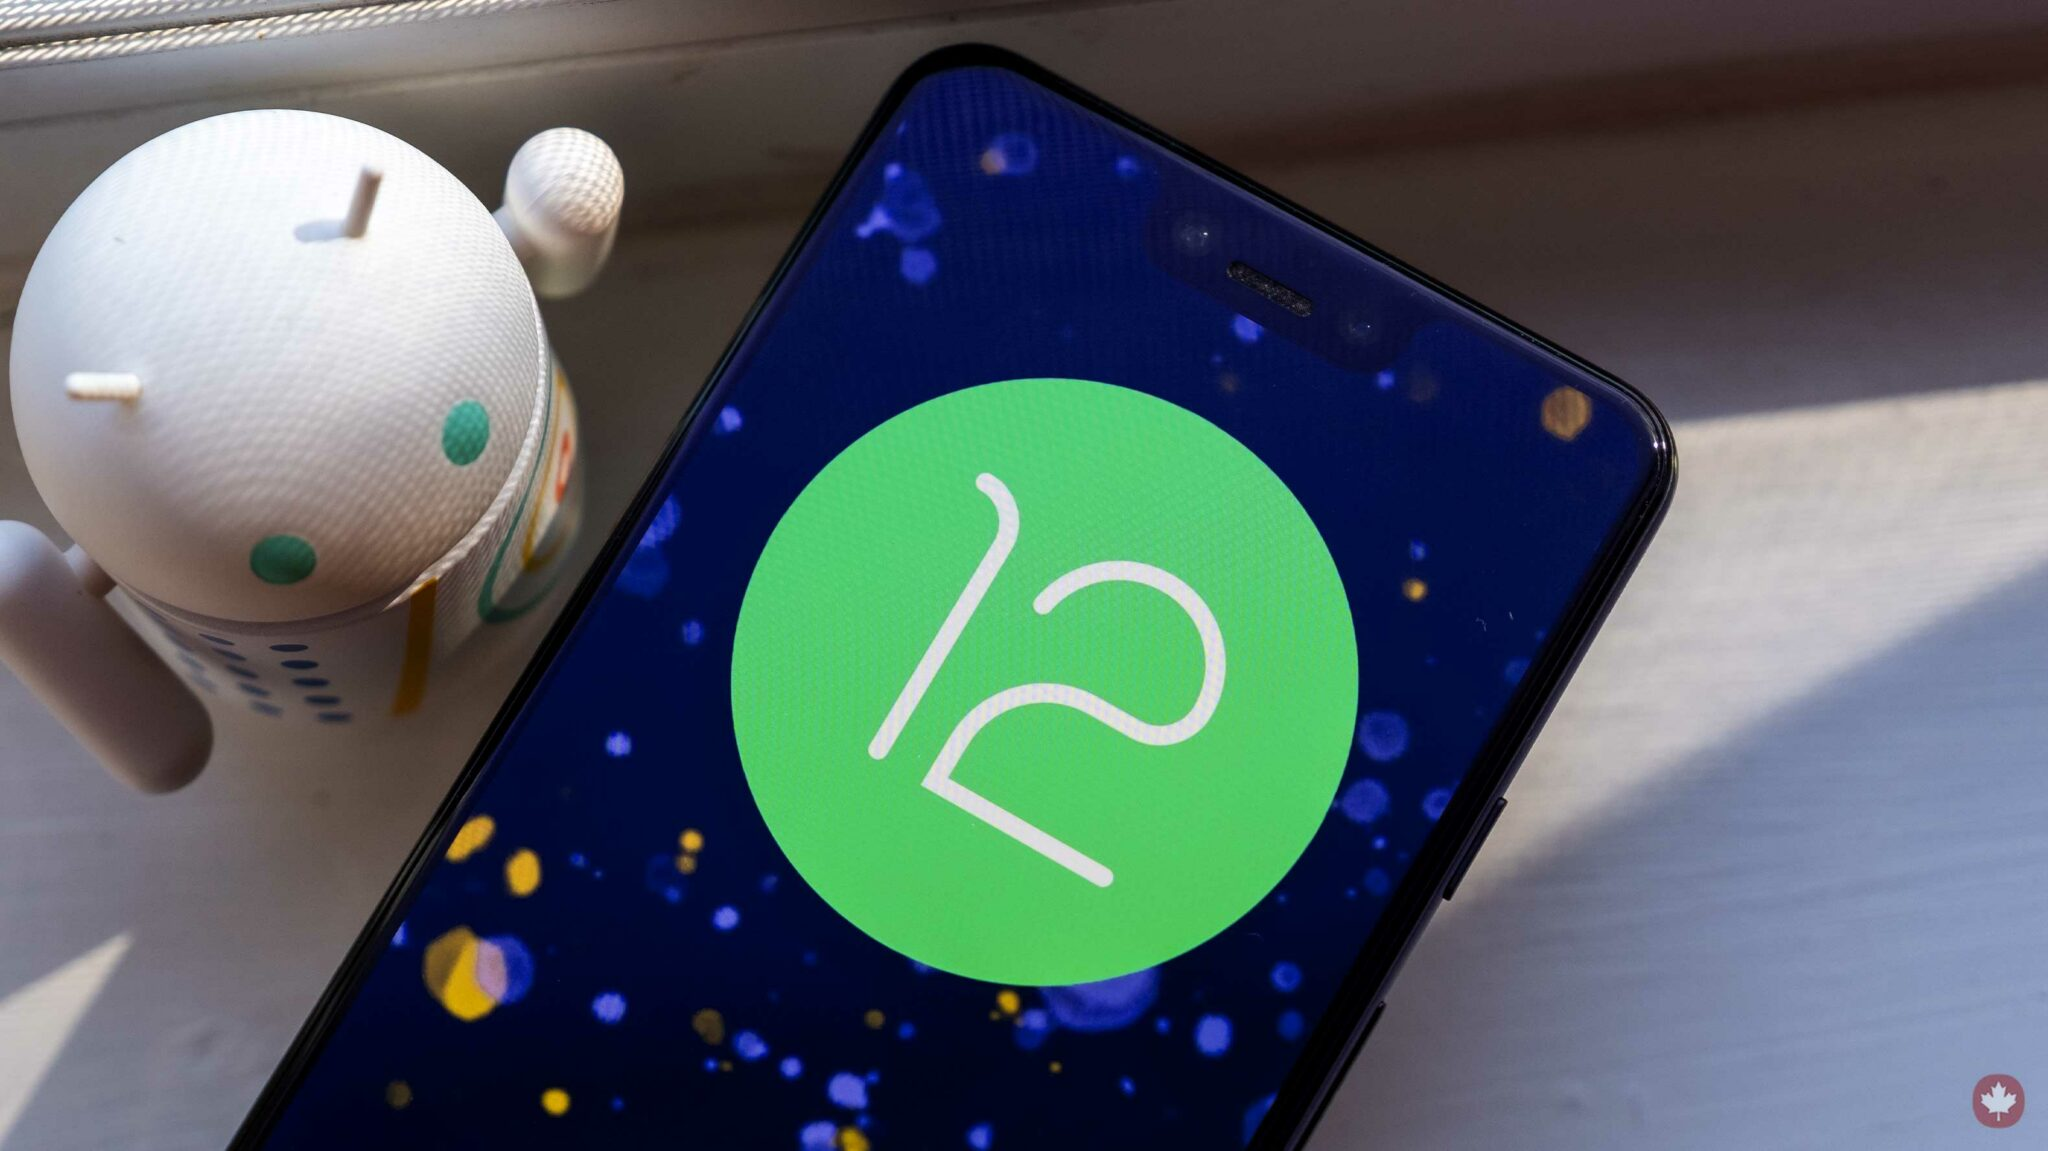 Android 12 Beta 3.1 makes the subtlest change to the screen-rotate animation